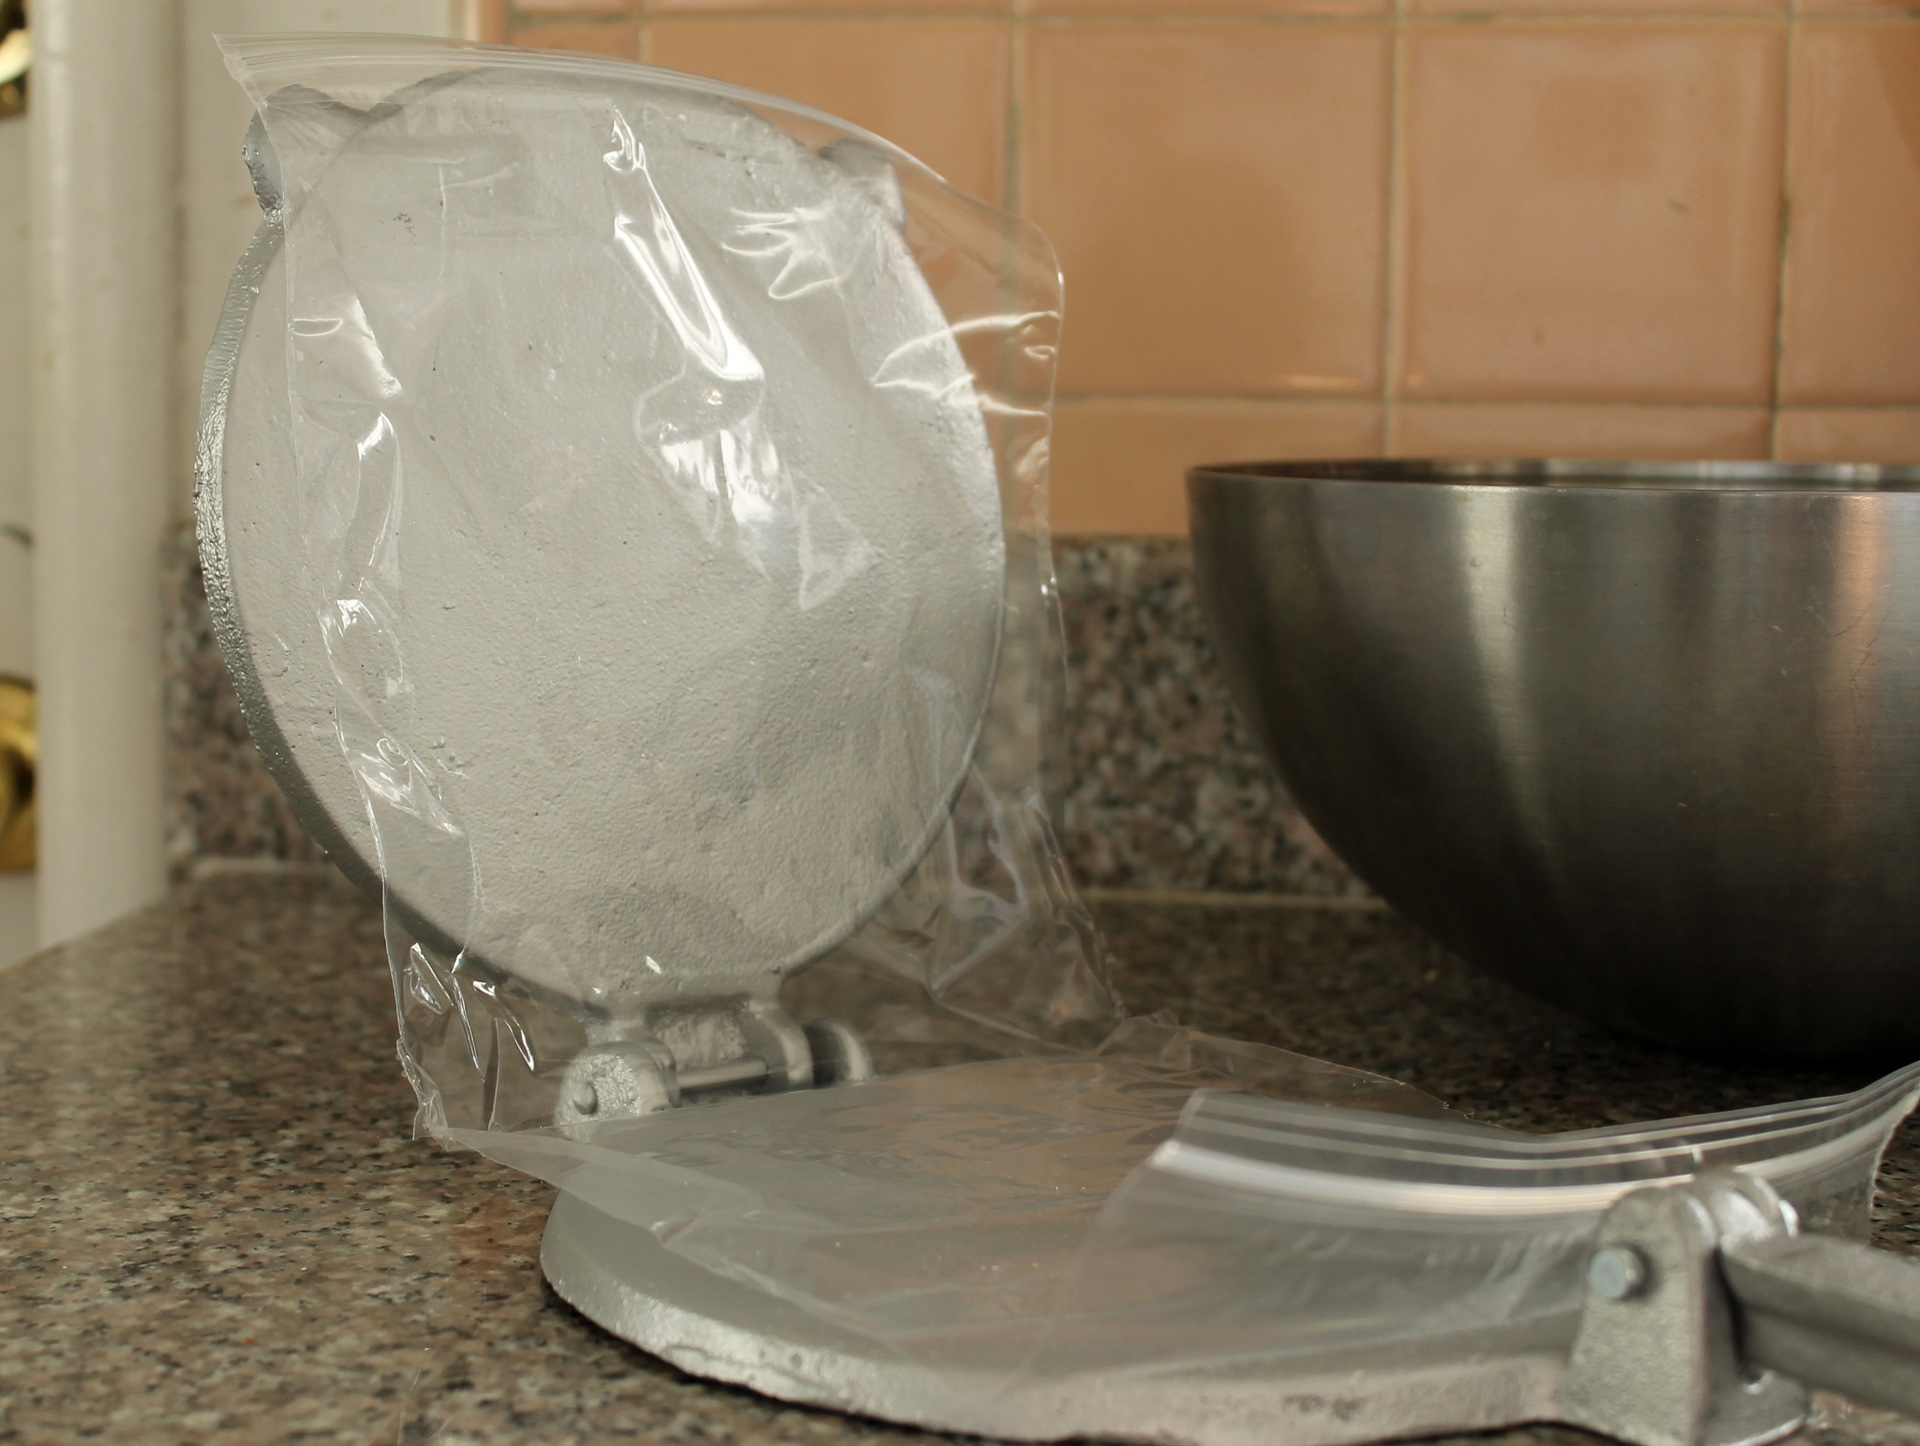 Line the tortilla press with an opened zipper lock bag.